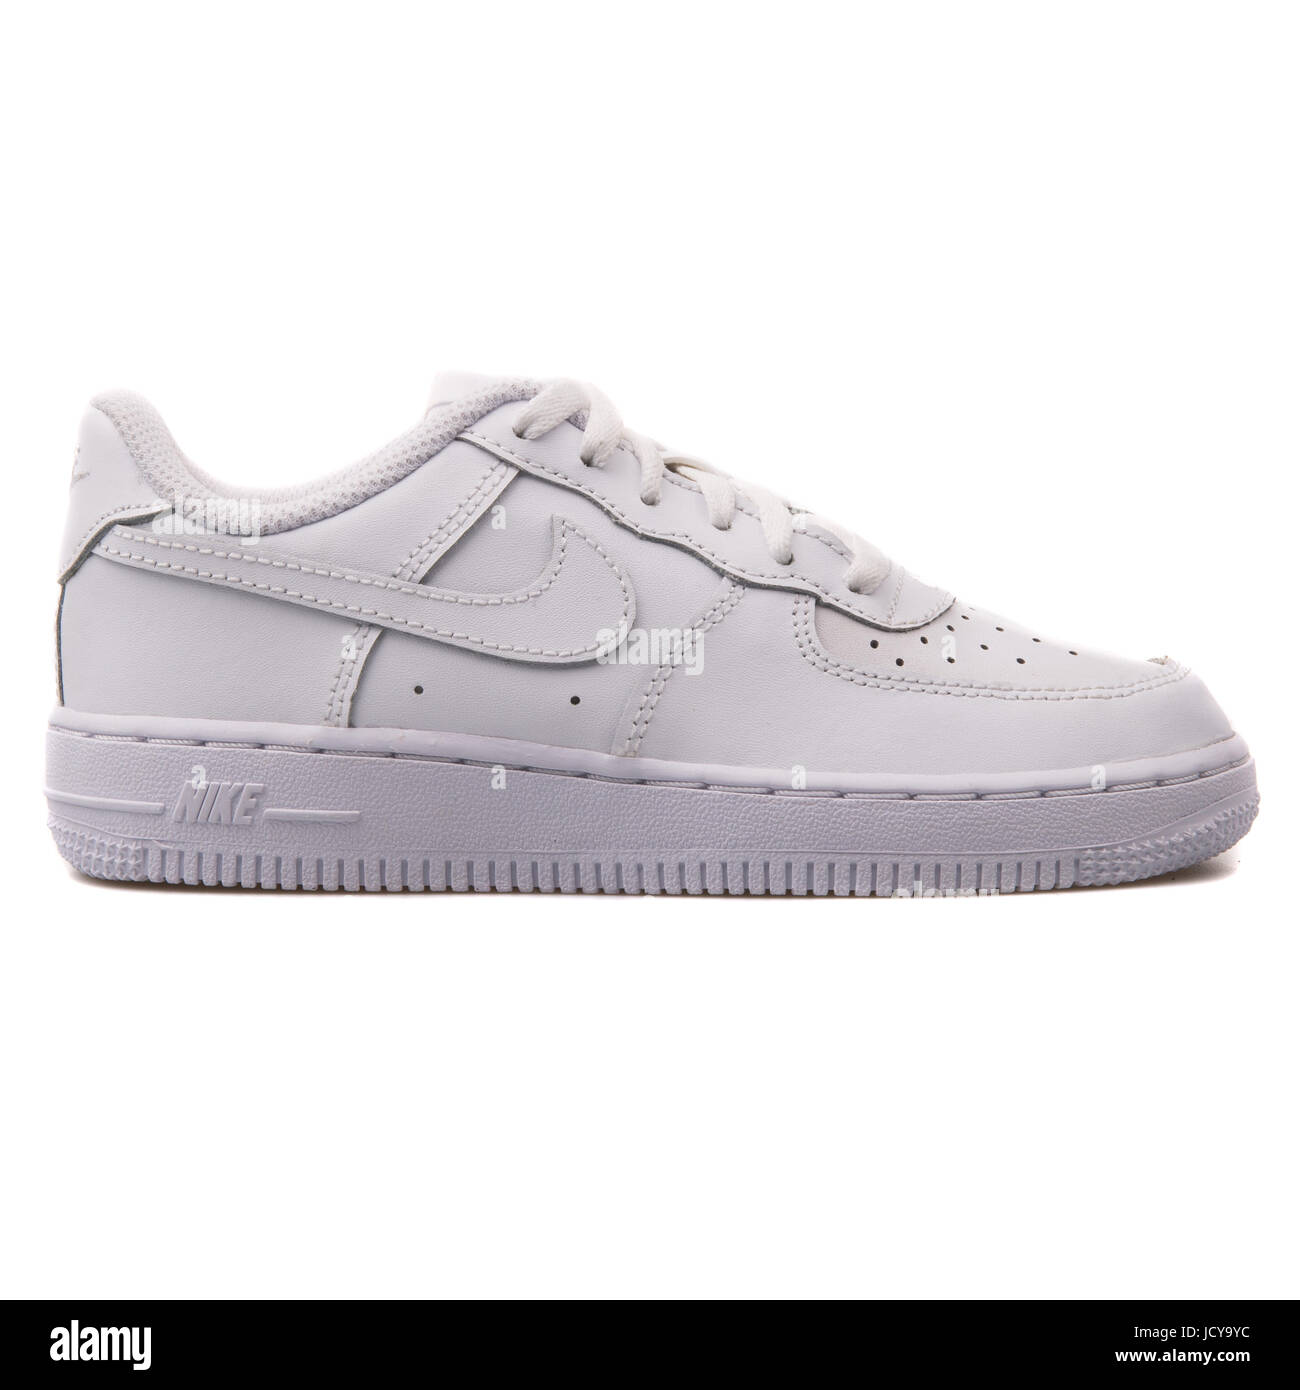 c49f7ebba20b Nike Force 1 (PS) White Youth s Sports Shoes - 314193-117 - Stock